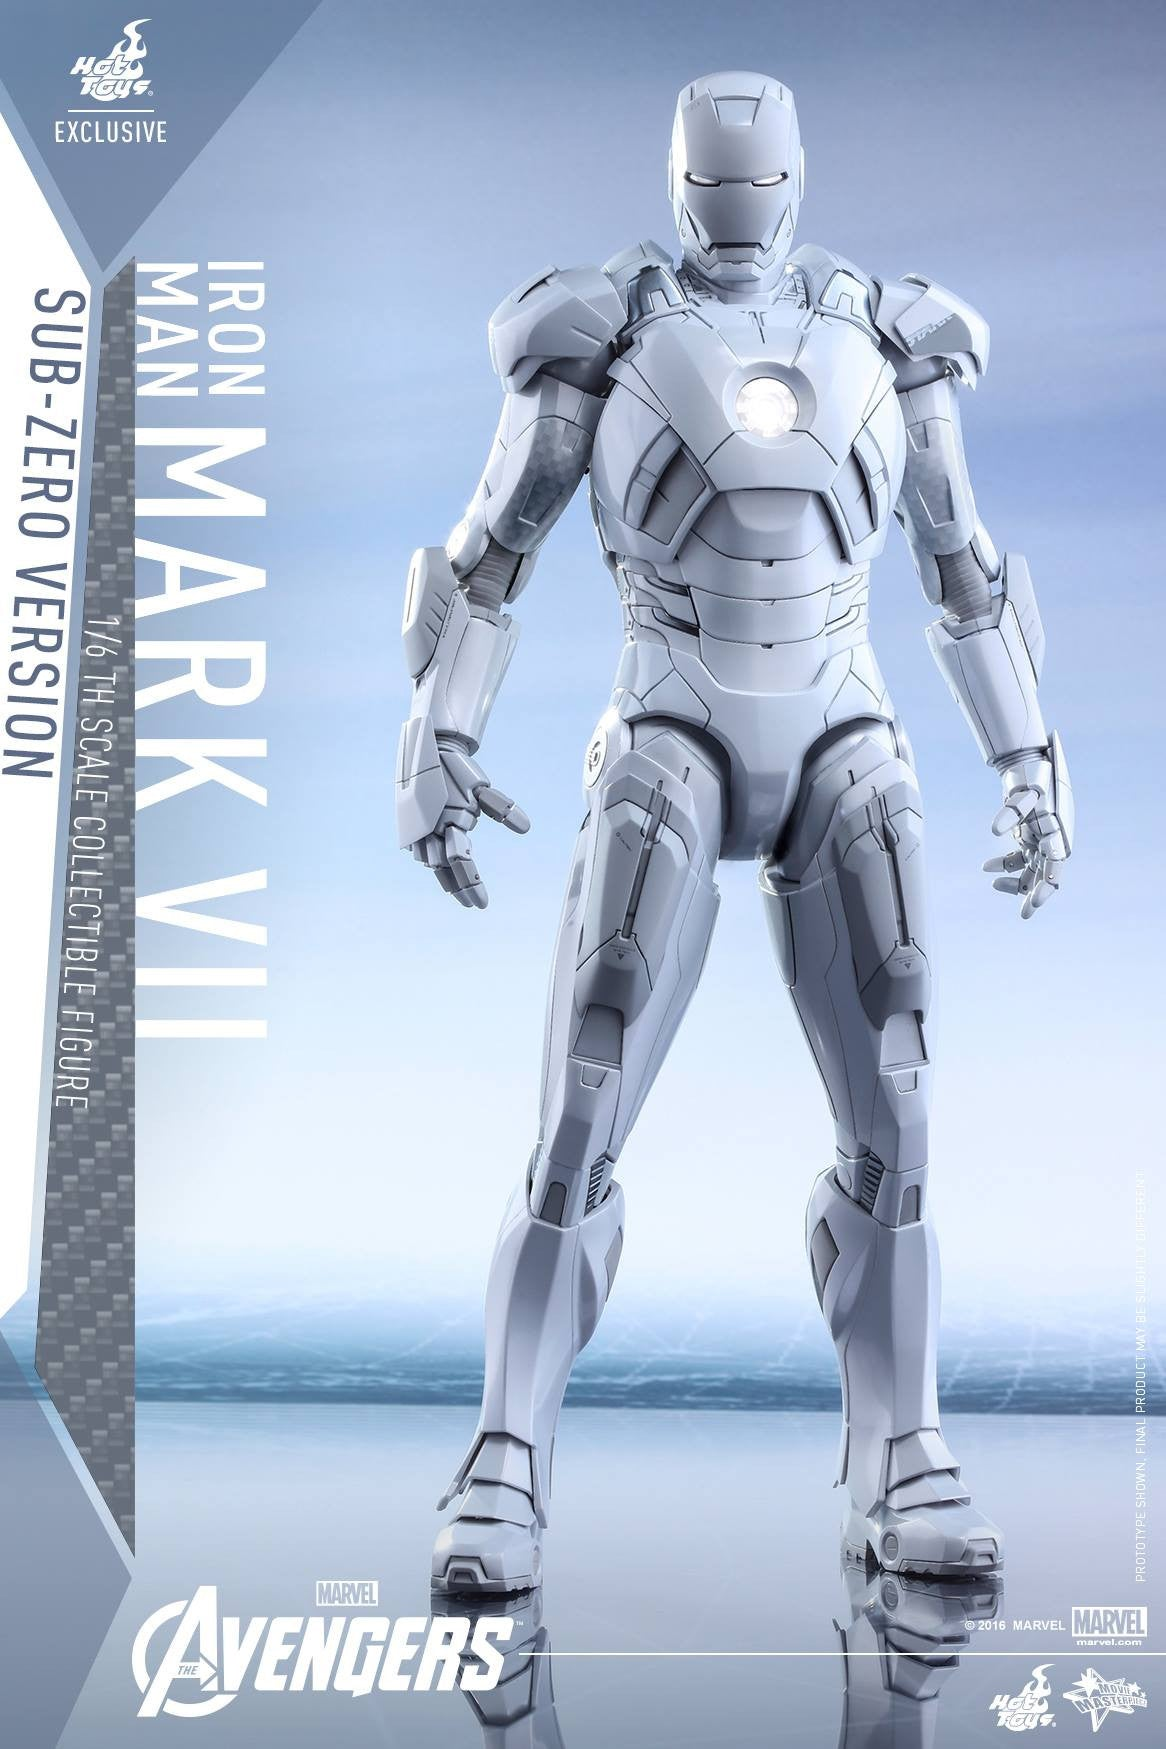 (IN STOCK) Hot Toys - MMS329 - The Avengers - Iron Man Mark VII (Sub-Zero Version) - Marvelous Toys - 4